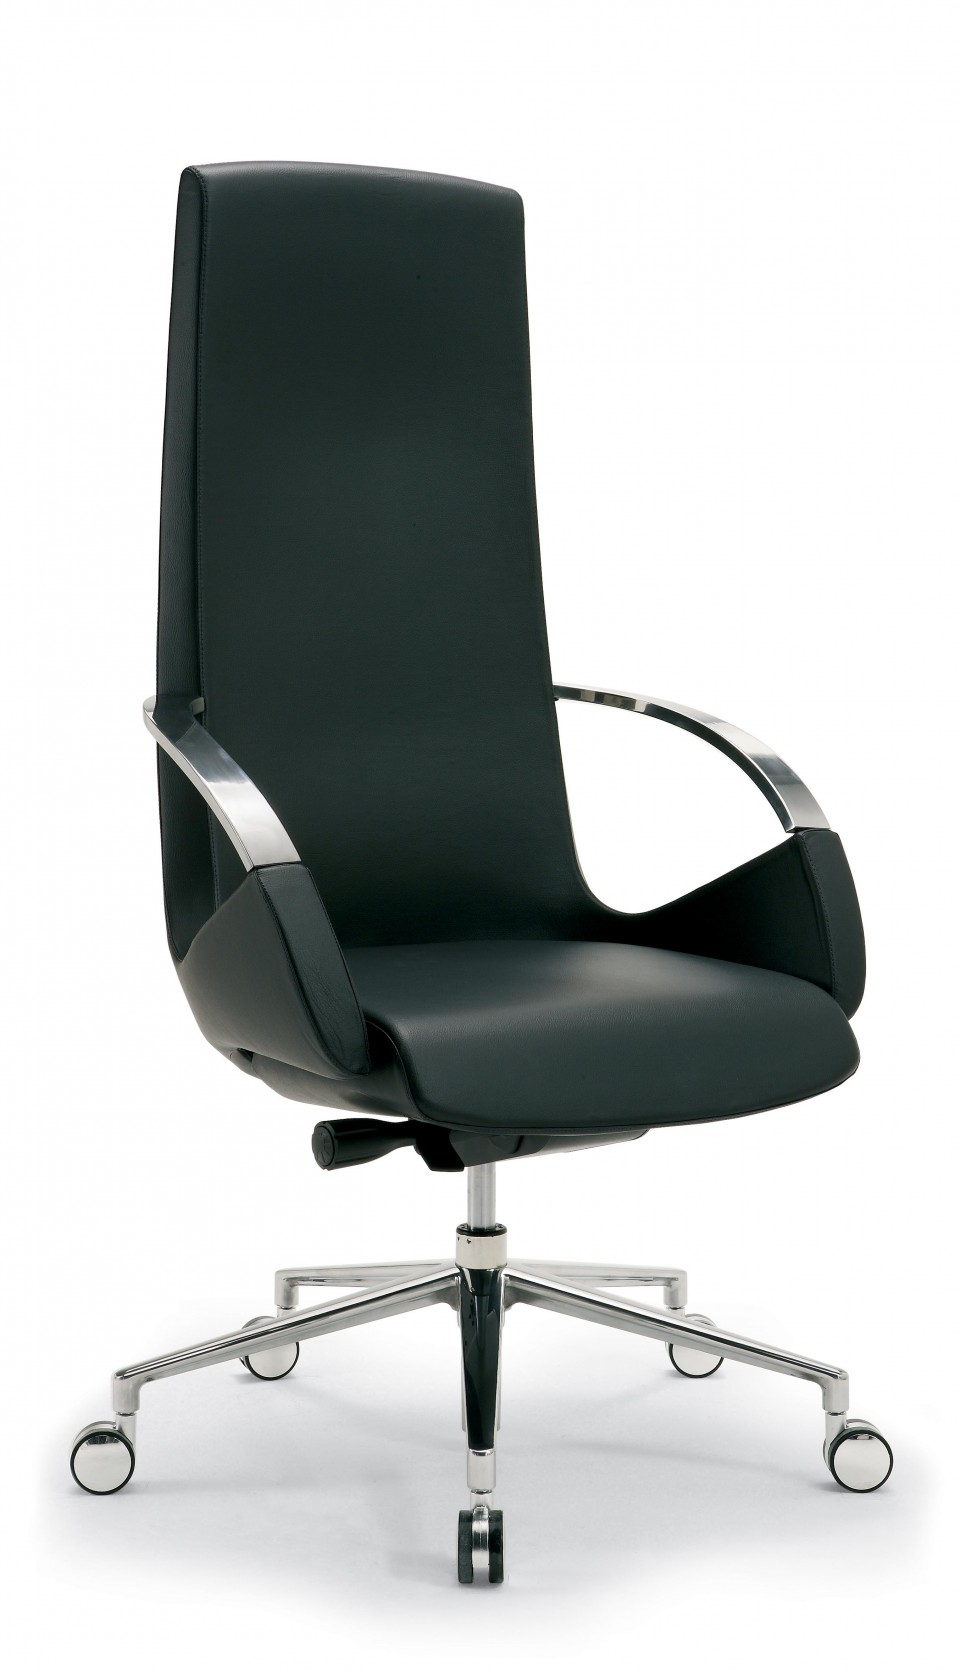 fauteuil de bureau cuir cosmos achat fauteuil de bureau cuir 1 143 00. Black Bedroom Furniture Sets. Home Design Ideas